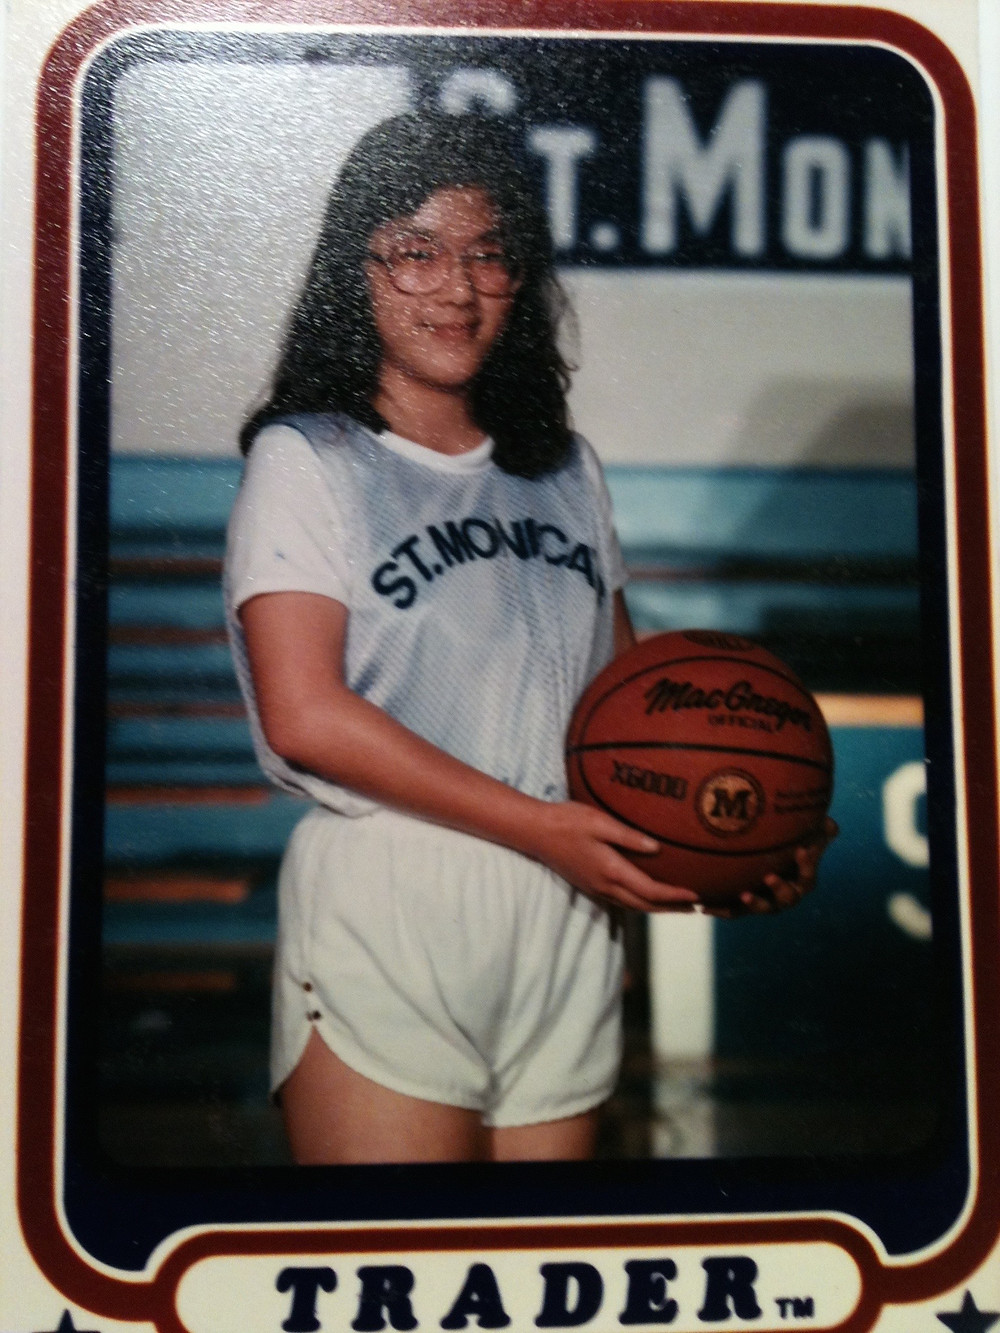 Much to the chagrin of my teammates, I did join the basketball team in the 8th grade. I wanted to hang out with my best friend, Meredith, who was a very talented basketball player. (Sorry about the glasses, folks. It was the eighties.)